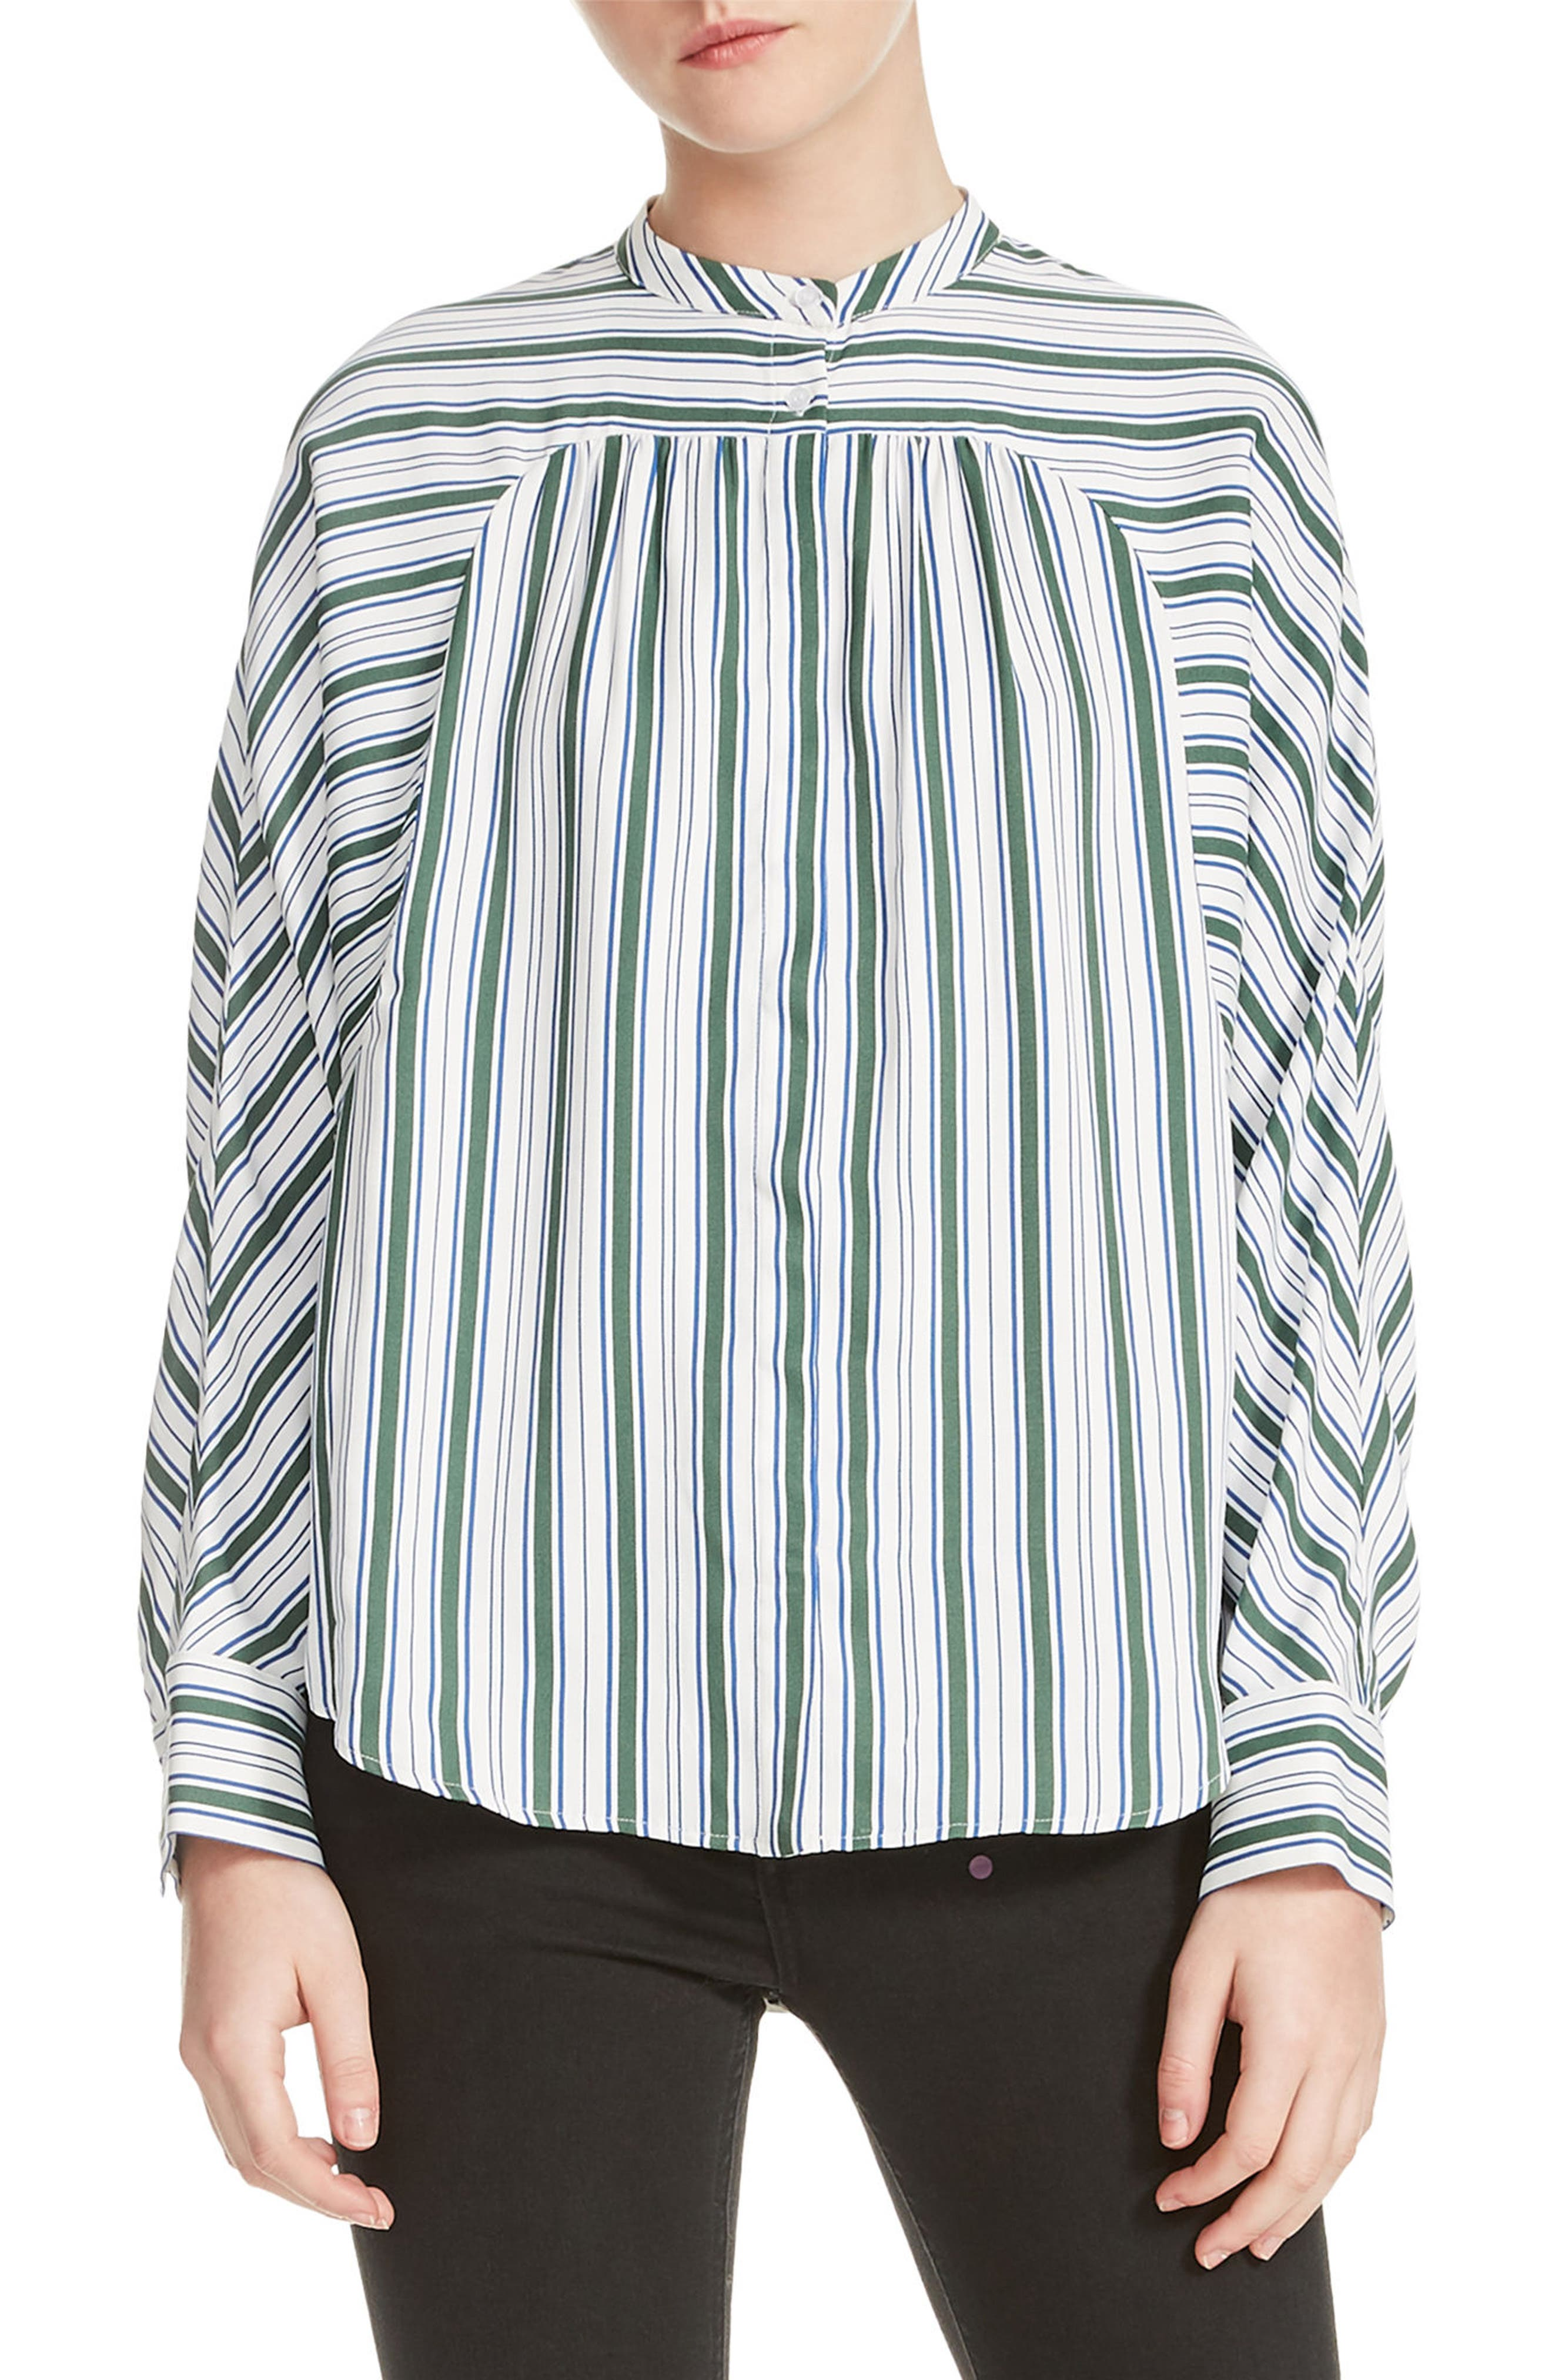 Coquille Stripe Blouse,                         Main,                         color, Print